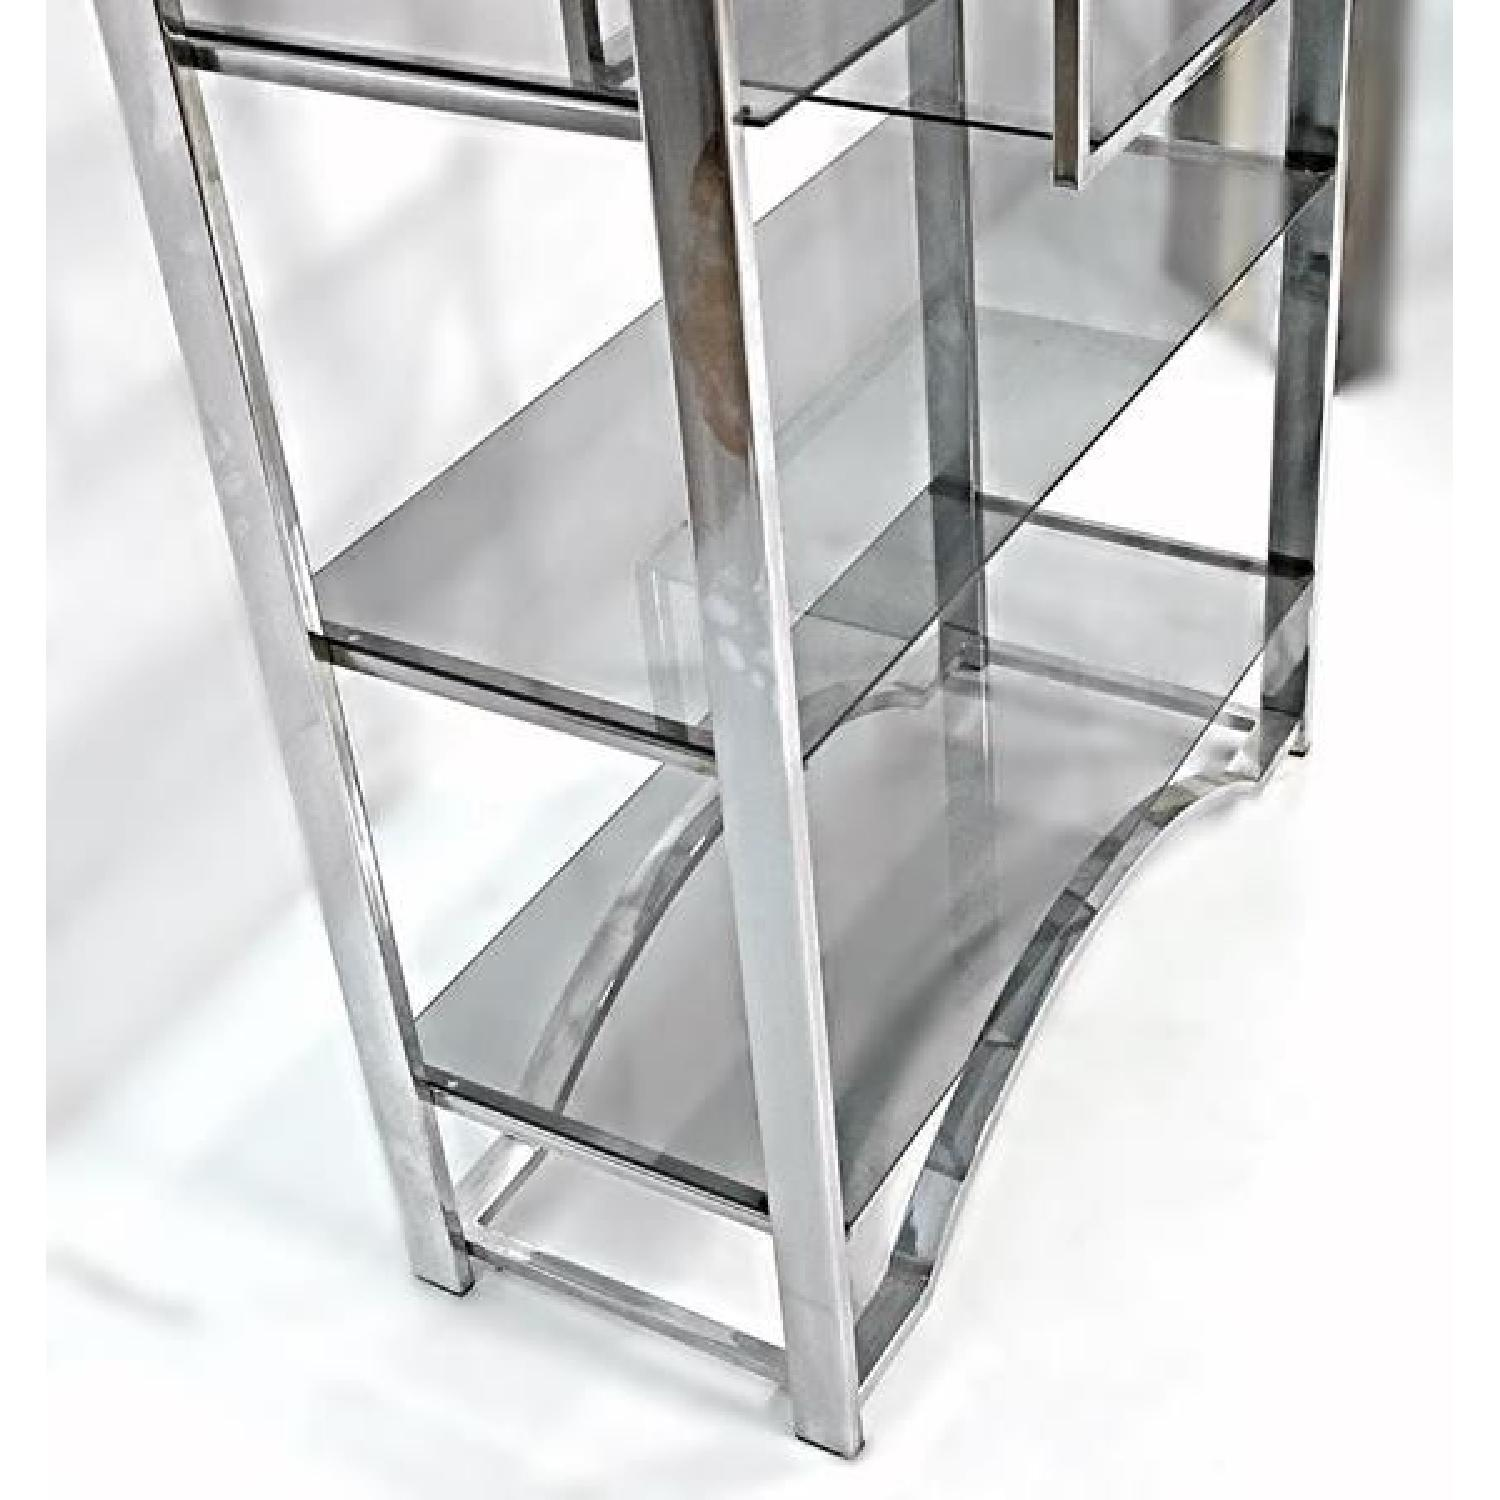 Milo Baughman Chrome Arched Top Etagere Smoked Glass Shelves - image-3